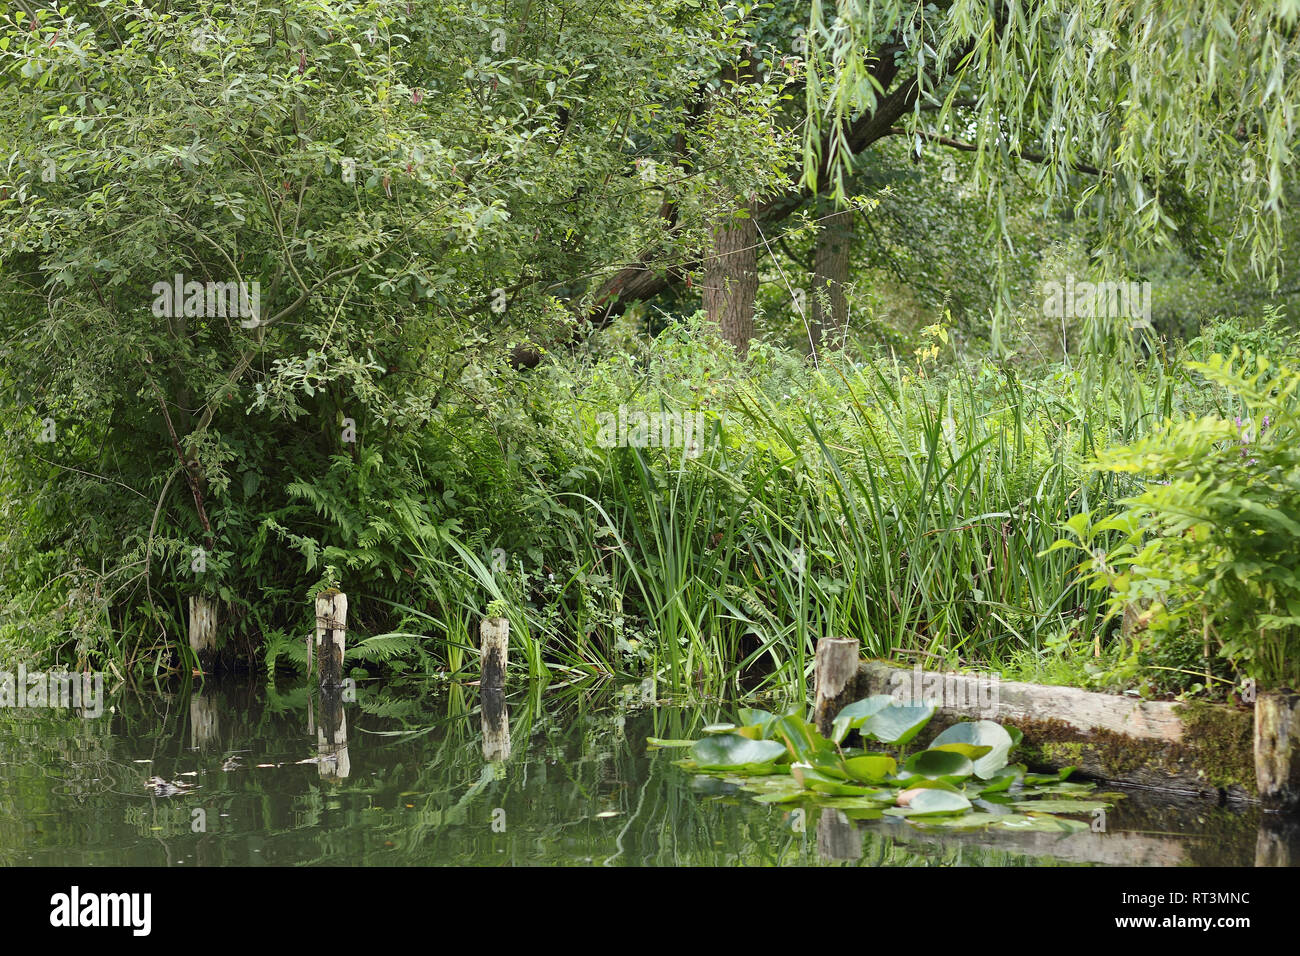 Riparian zone of a small stream in the Spreewald - Stock Image